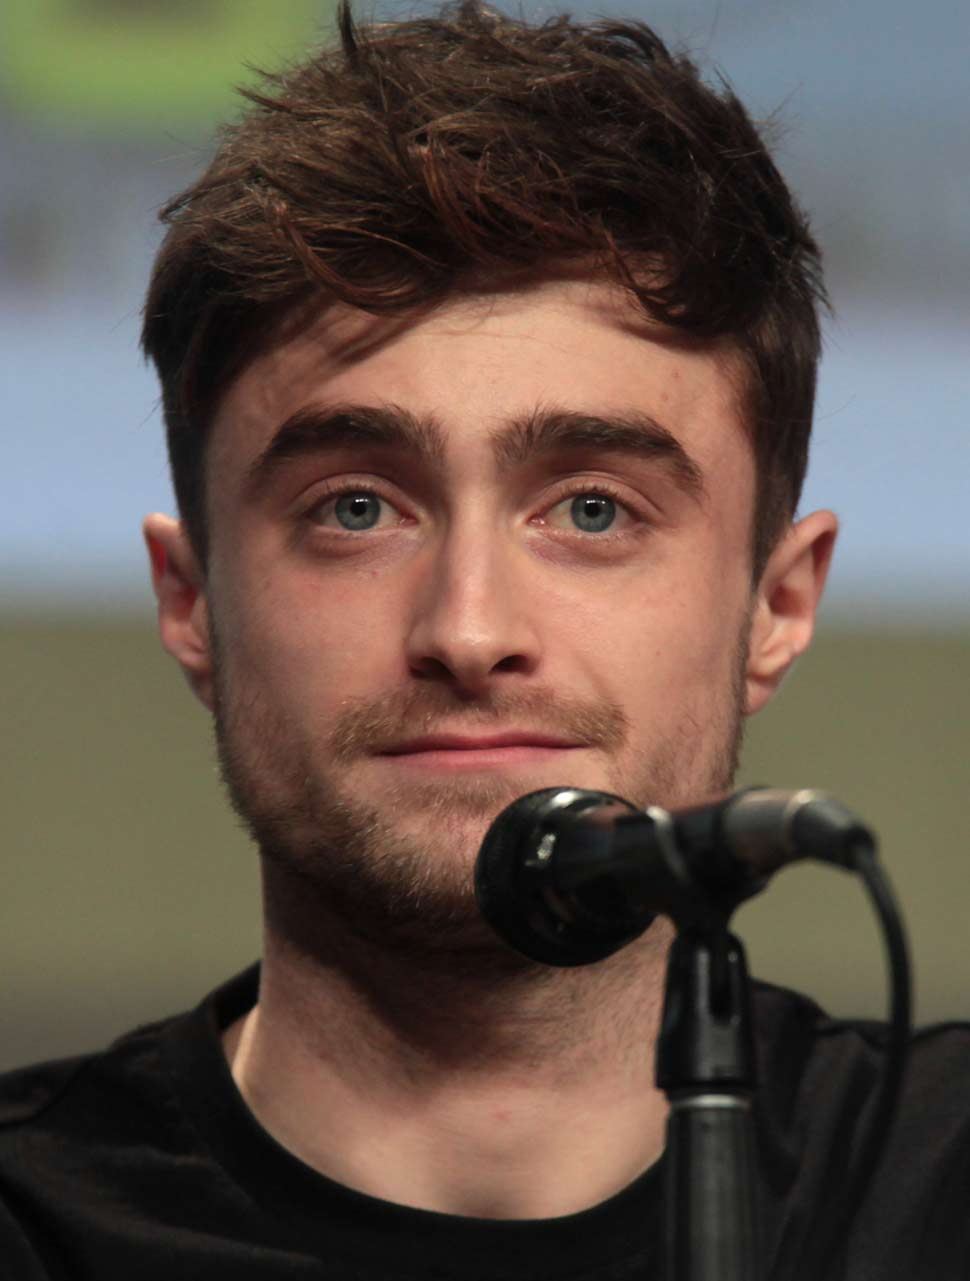 Daniel Radcliffe shows off his rapping skills